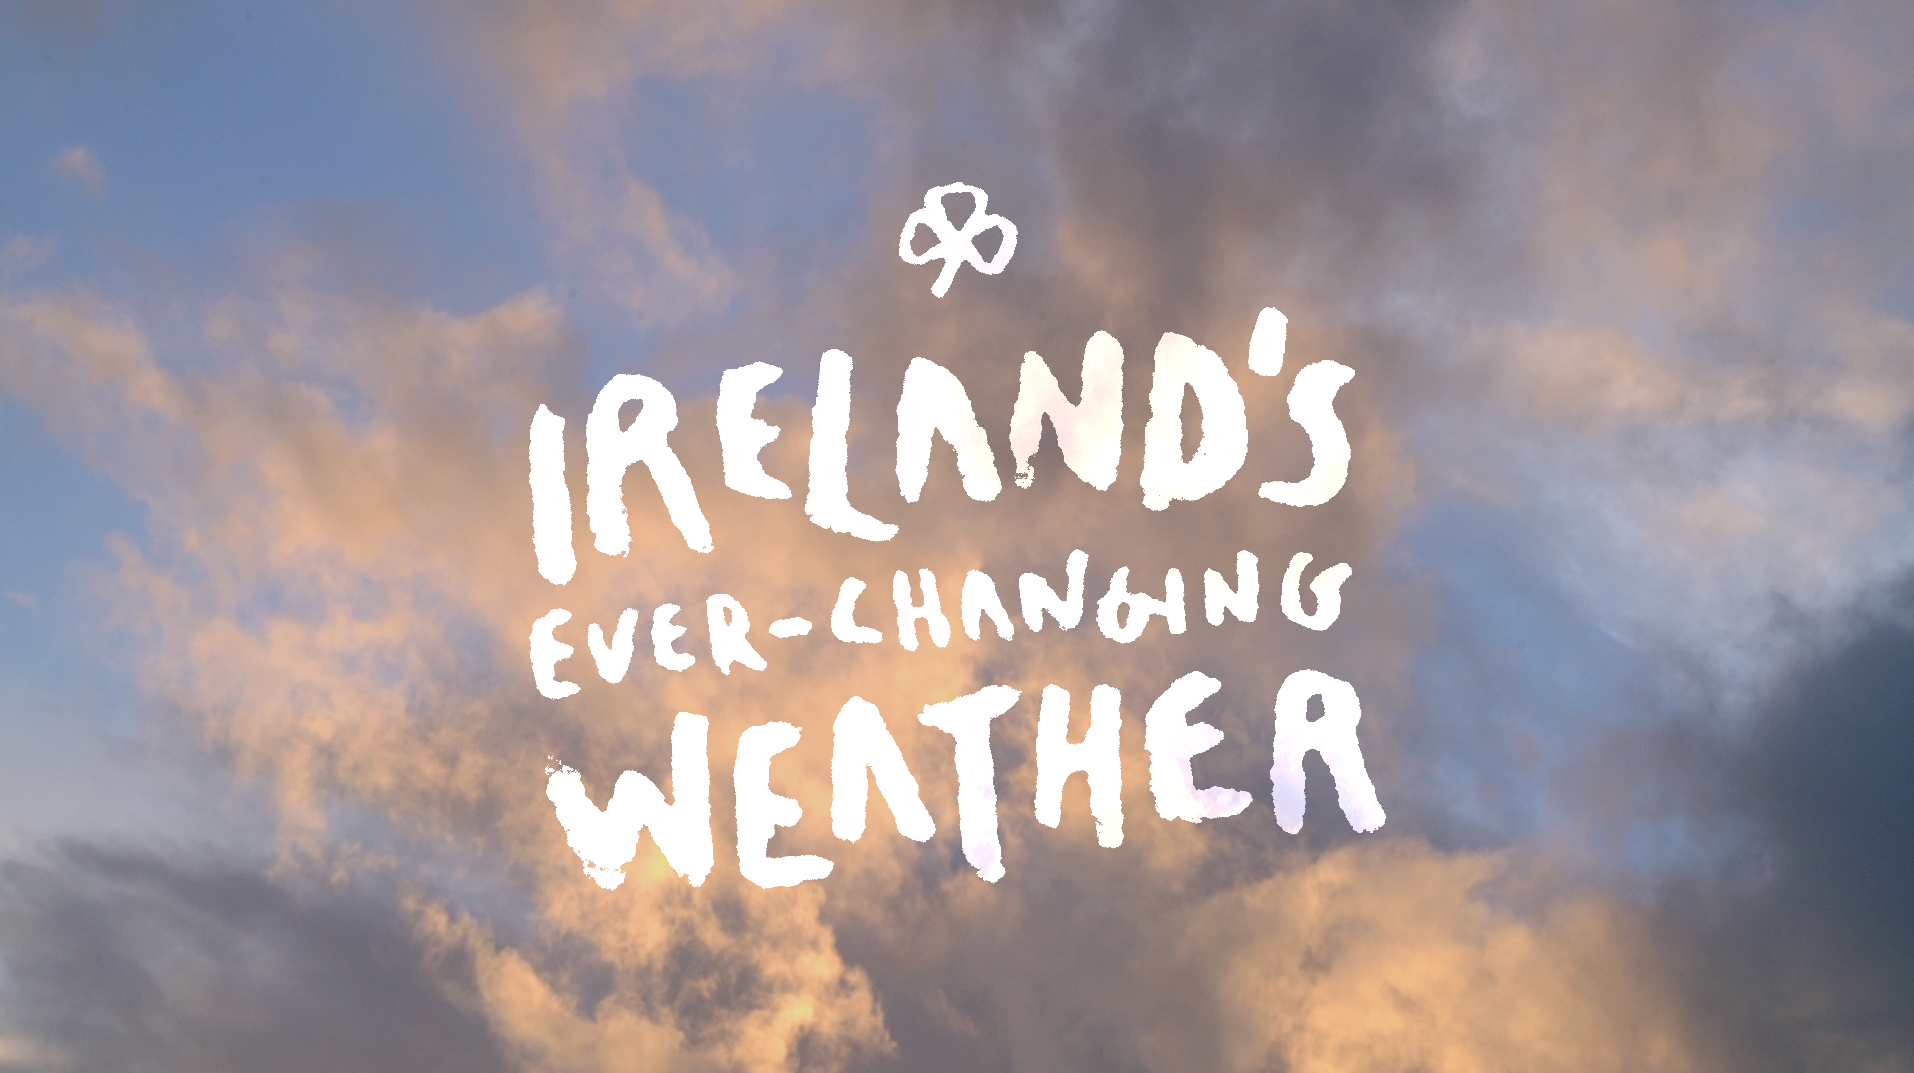 Ireland's ever-changing Weather